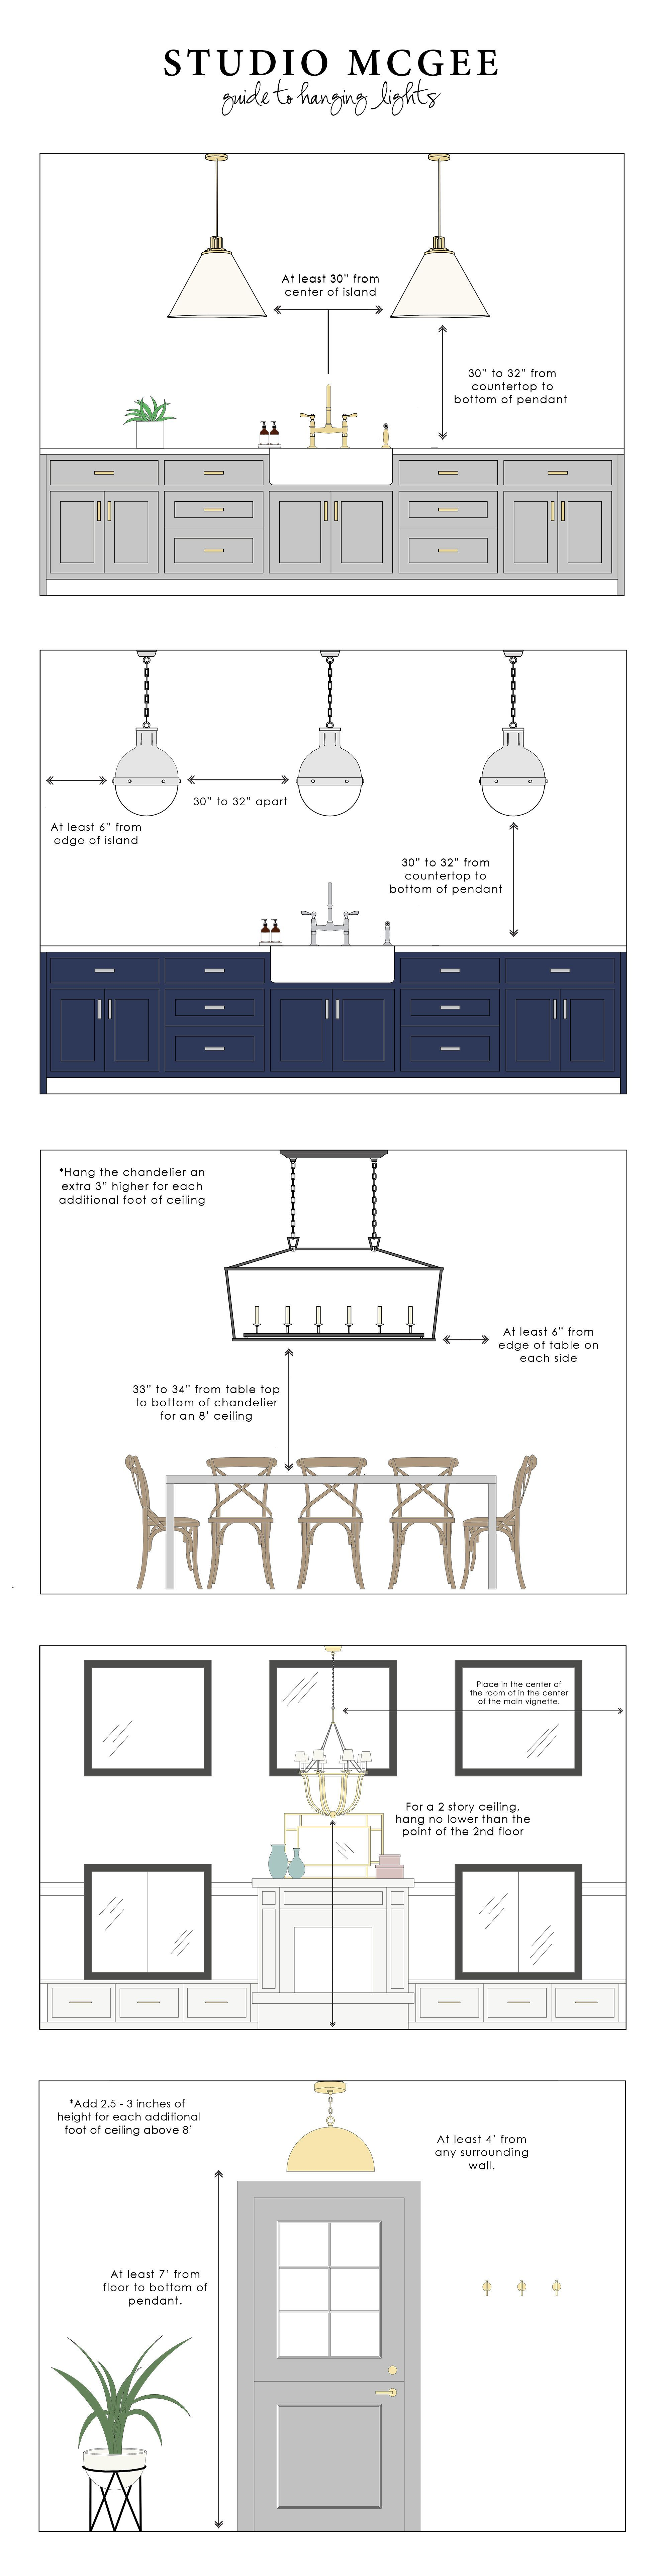 Studio mcgee guide to hanging lights farmhouse kitchen lighting